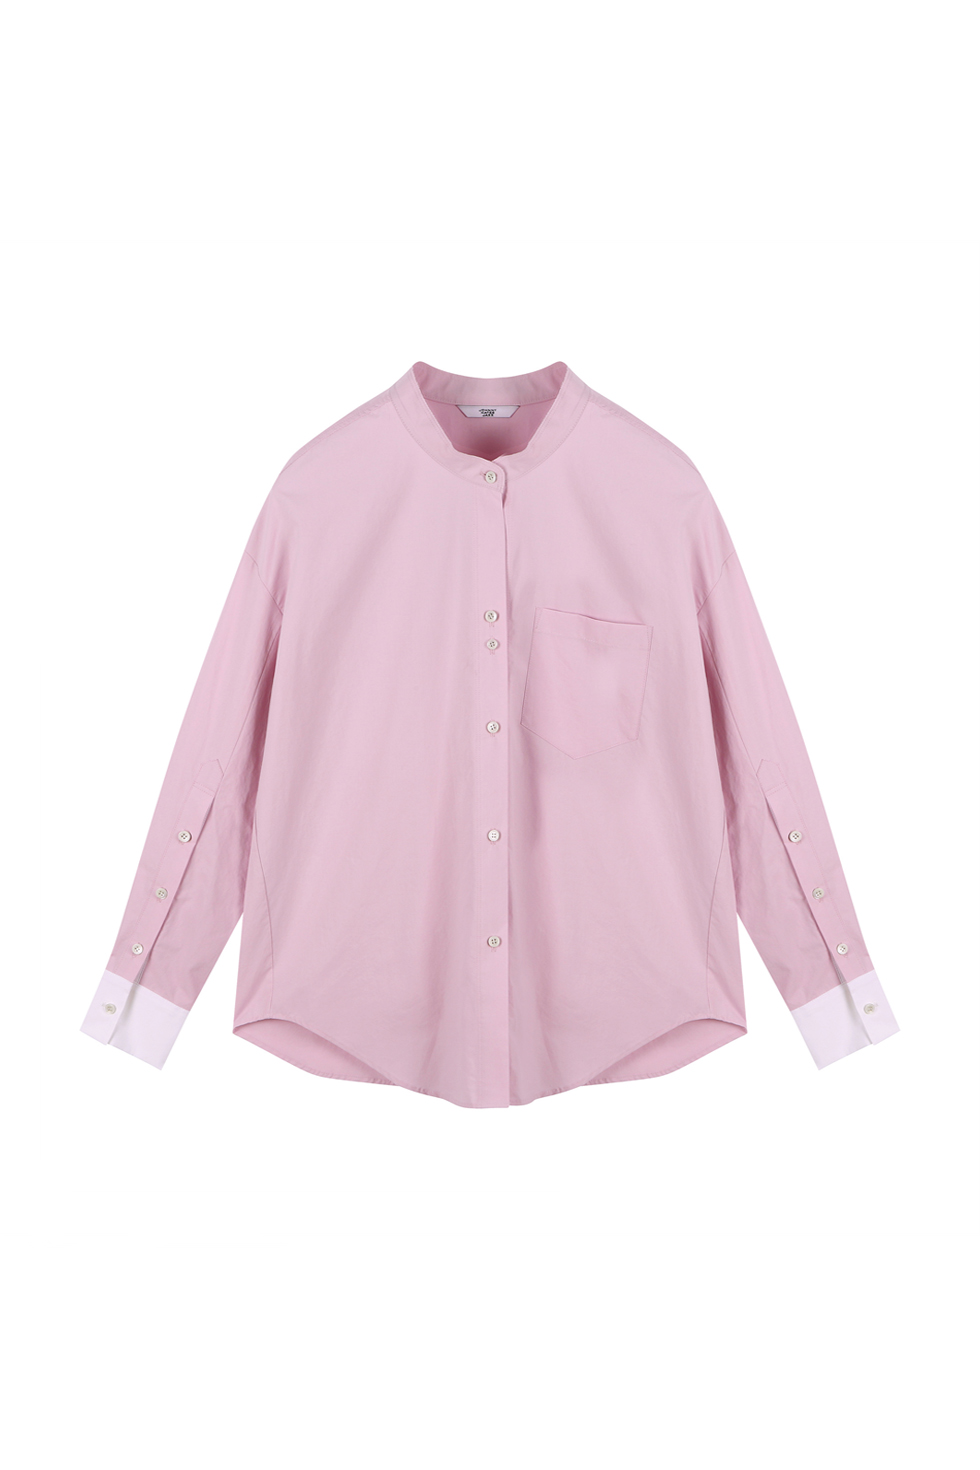 OVERSIZED COTTON SHIRTS - PINK